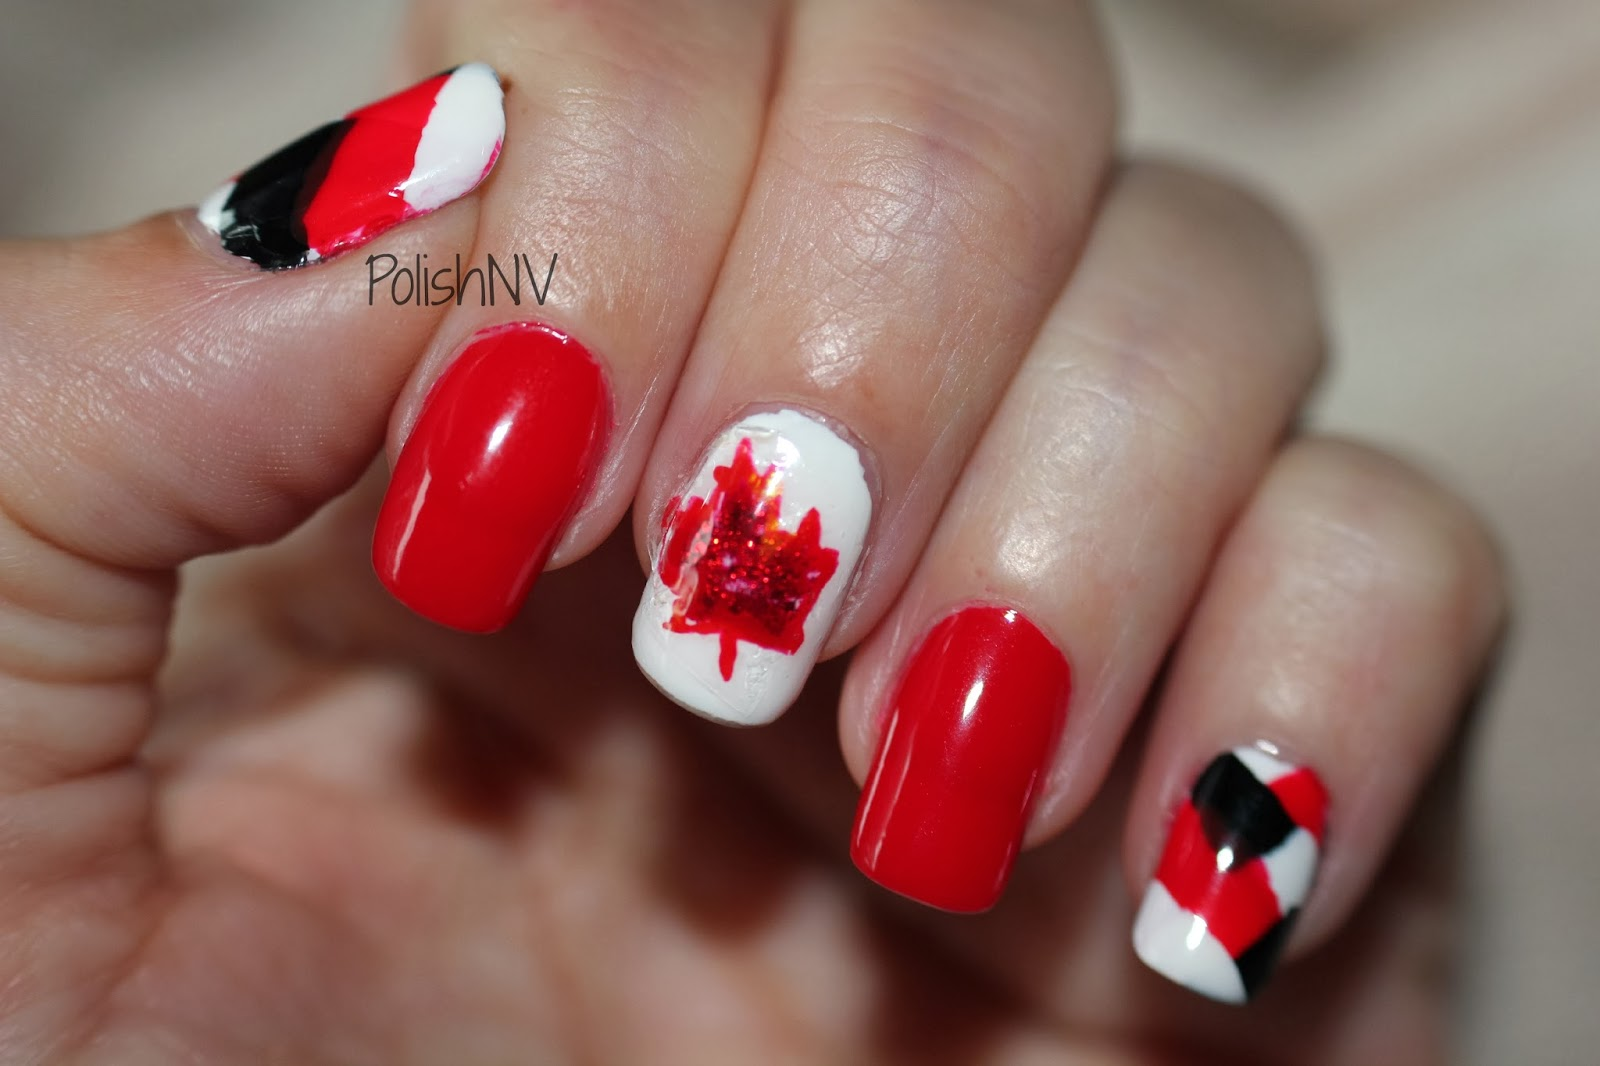 black, red, white nail art